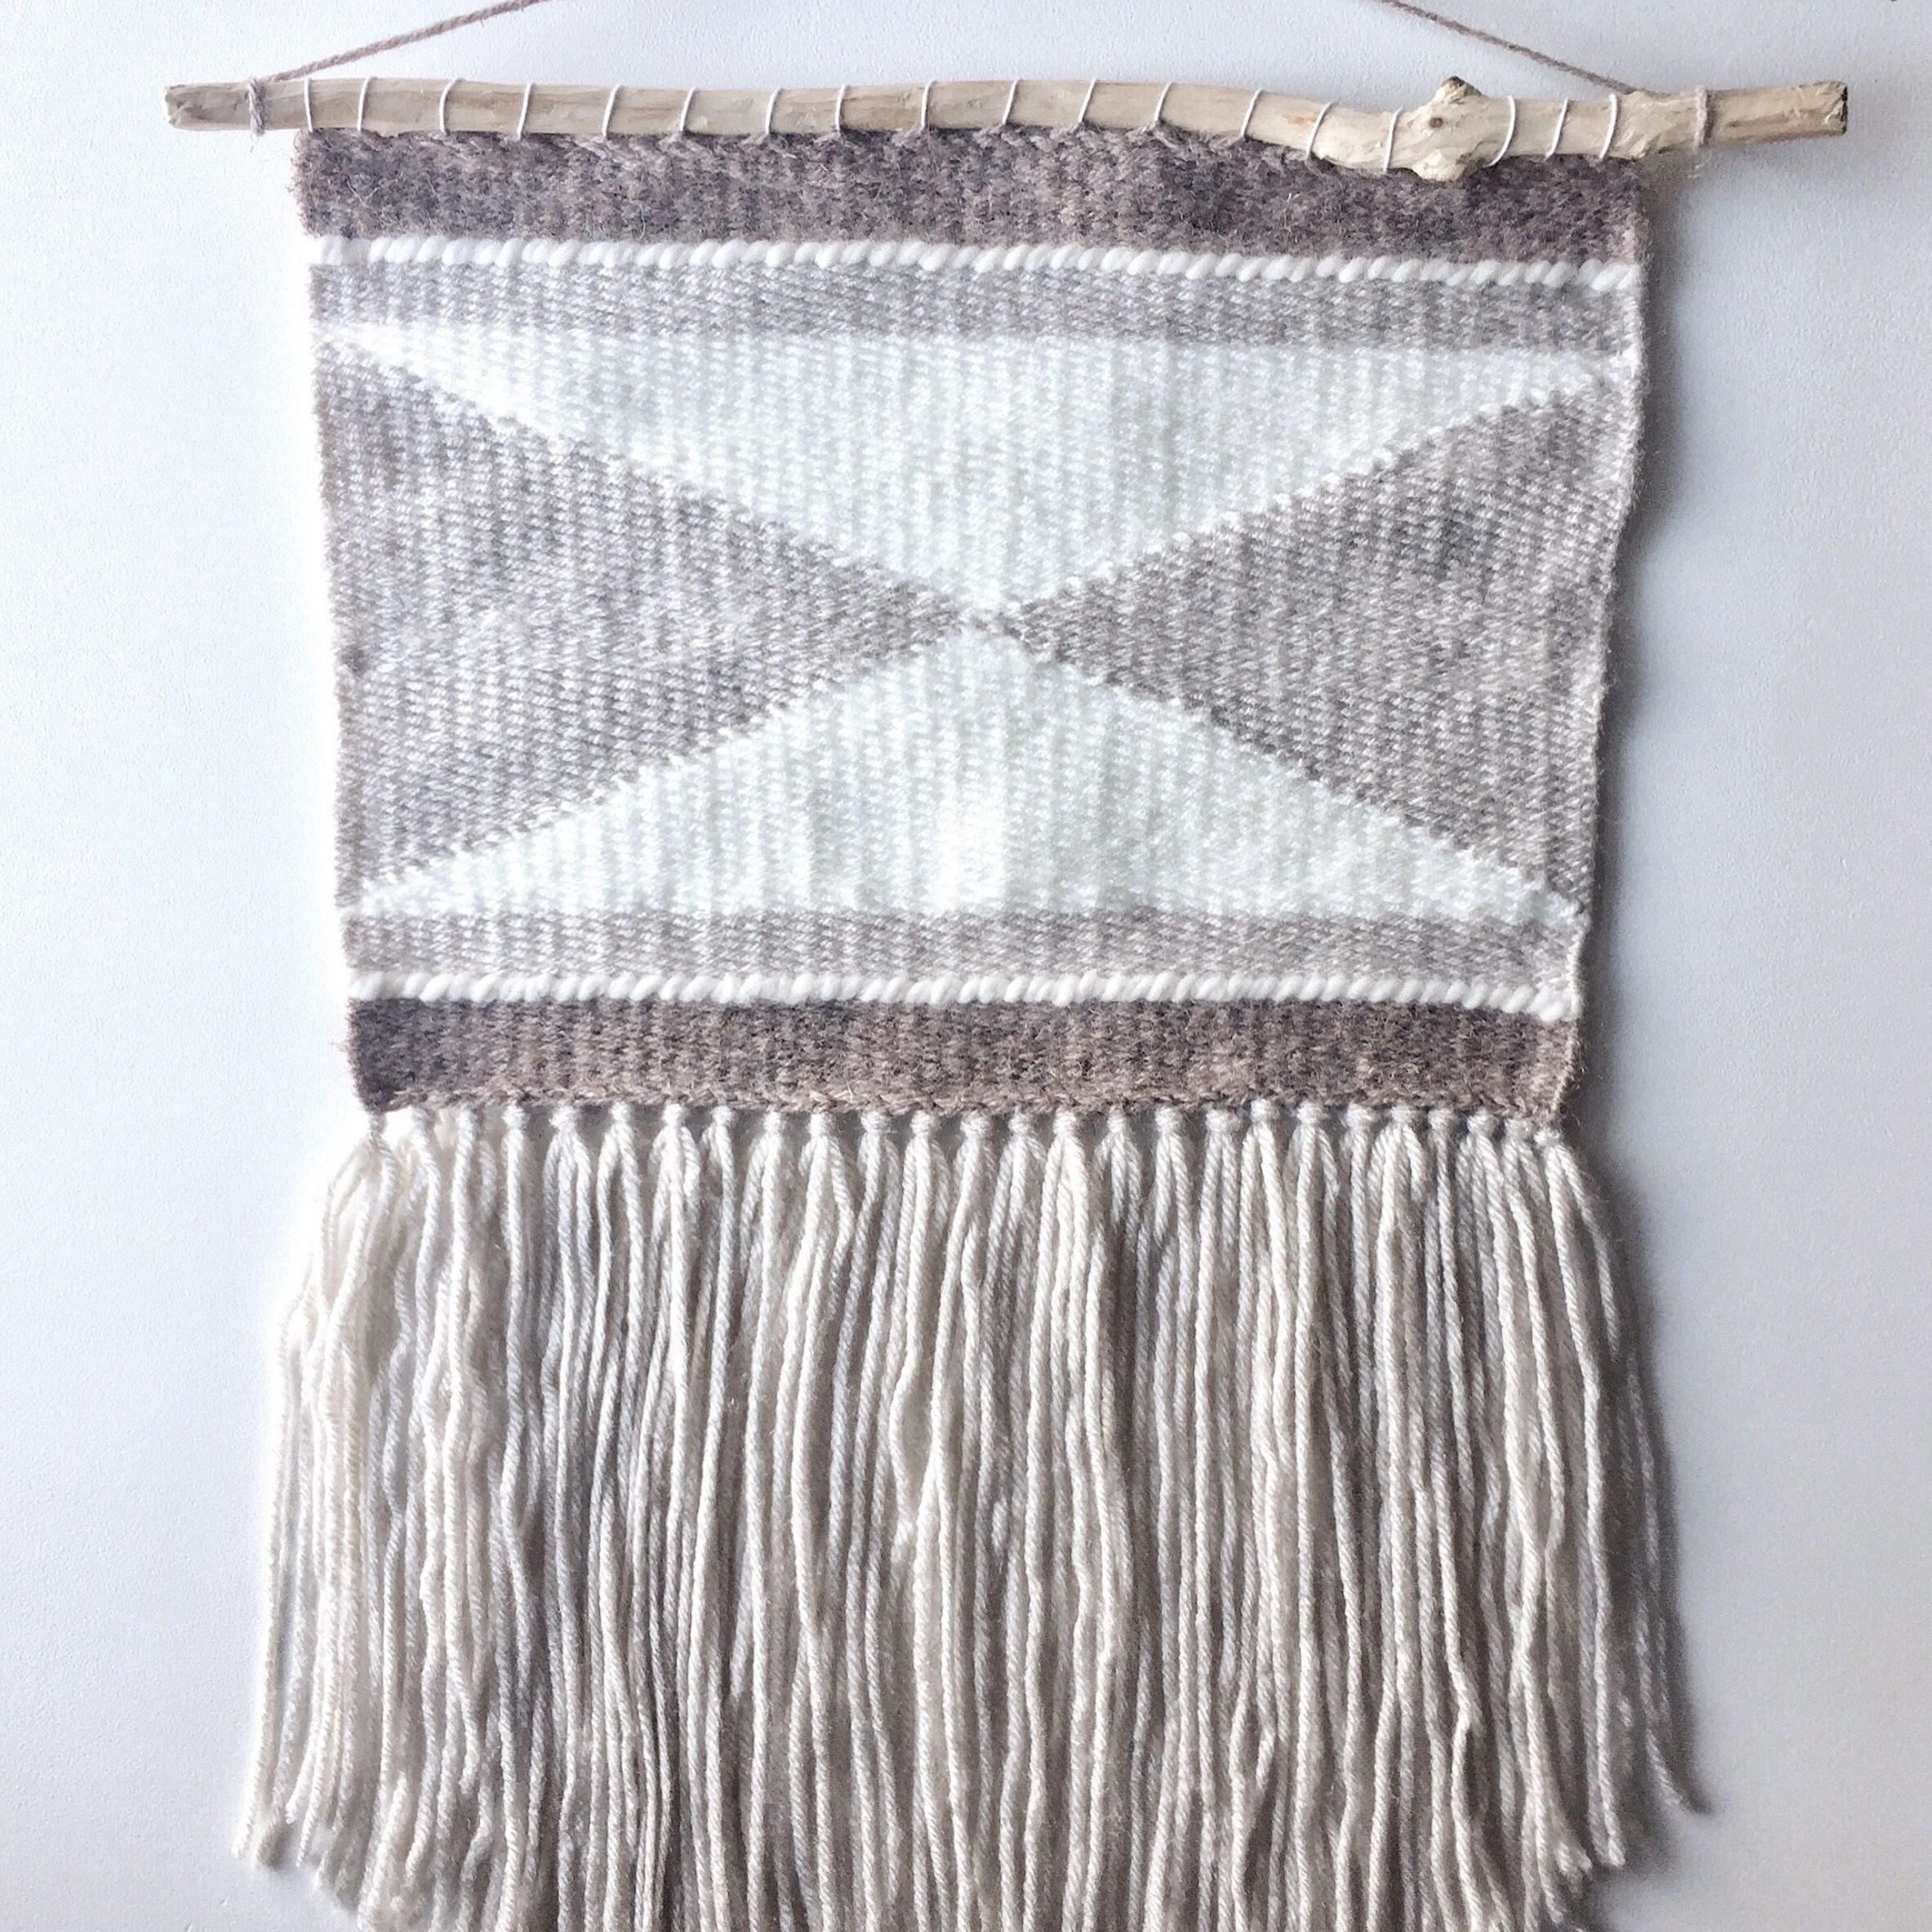 Pin On Weaving Pertaining To Most Current Blended Fabric Hello Beauty Full Wall Hangings (View 17 of 20)